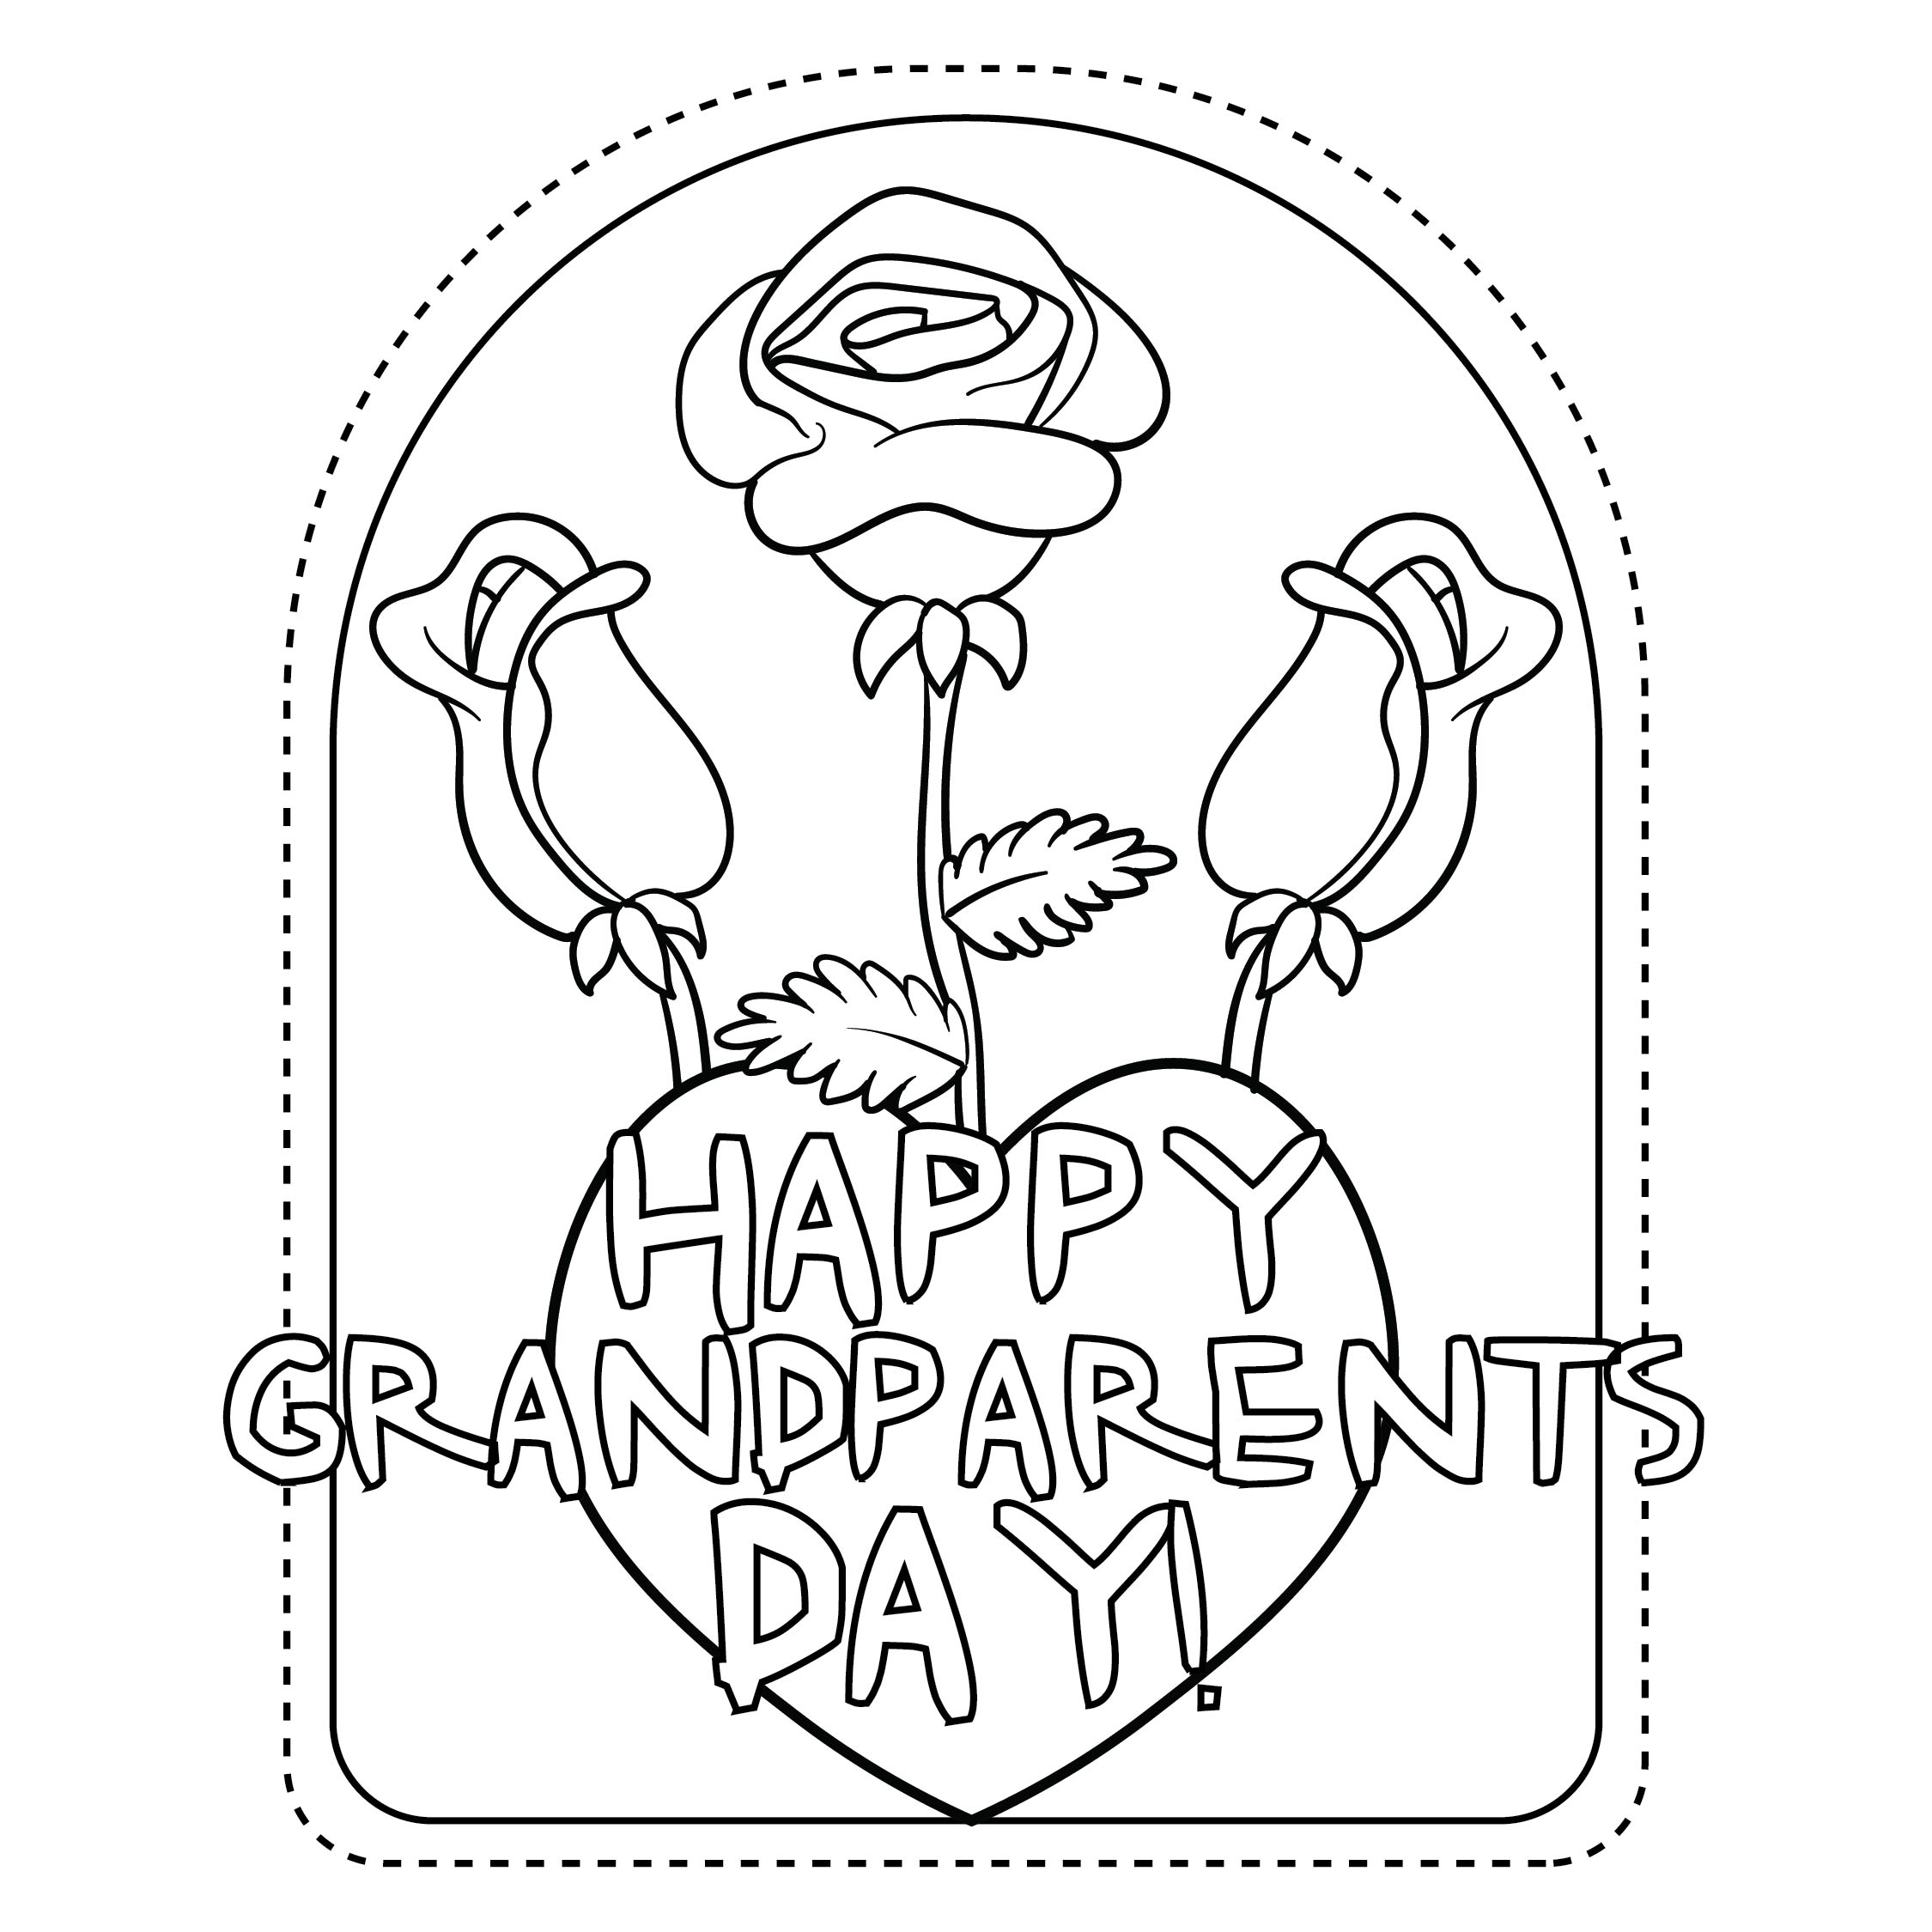 Grandparents free printable craftbnb for Coloring pages for grandparents